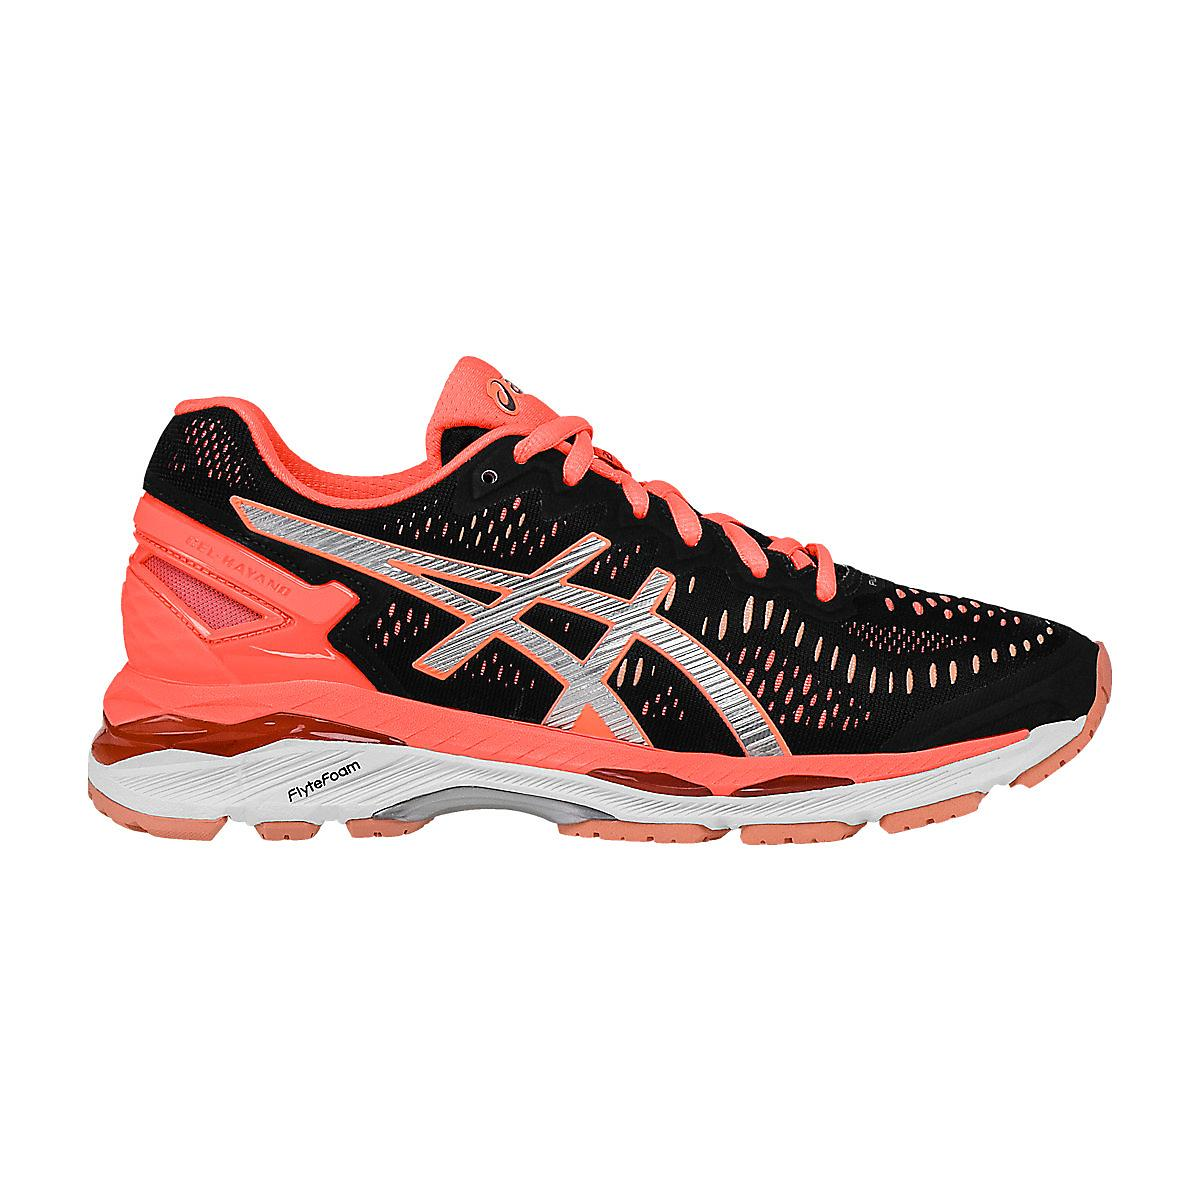 new york d6cd9 b38b9 Women's GEL-Kayano 23